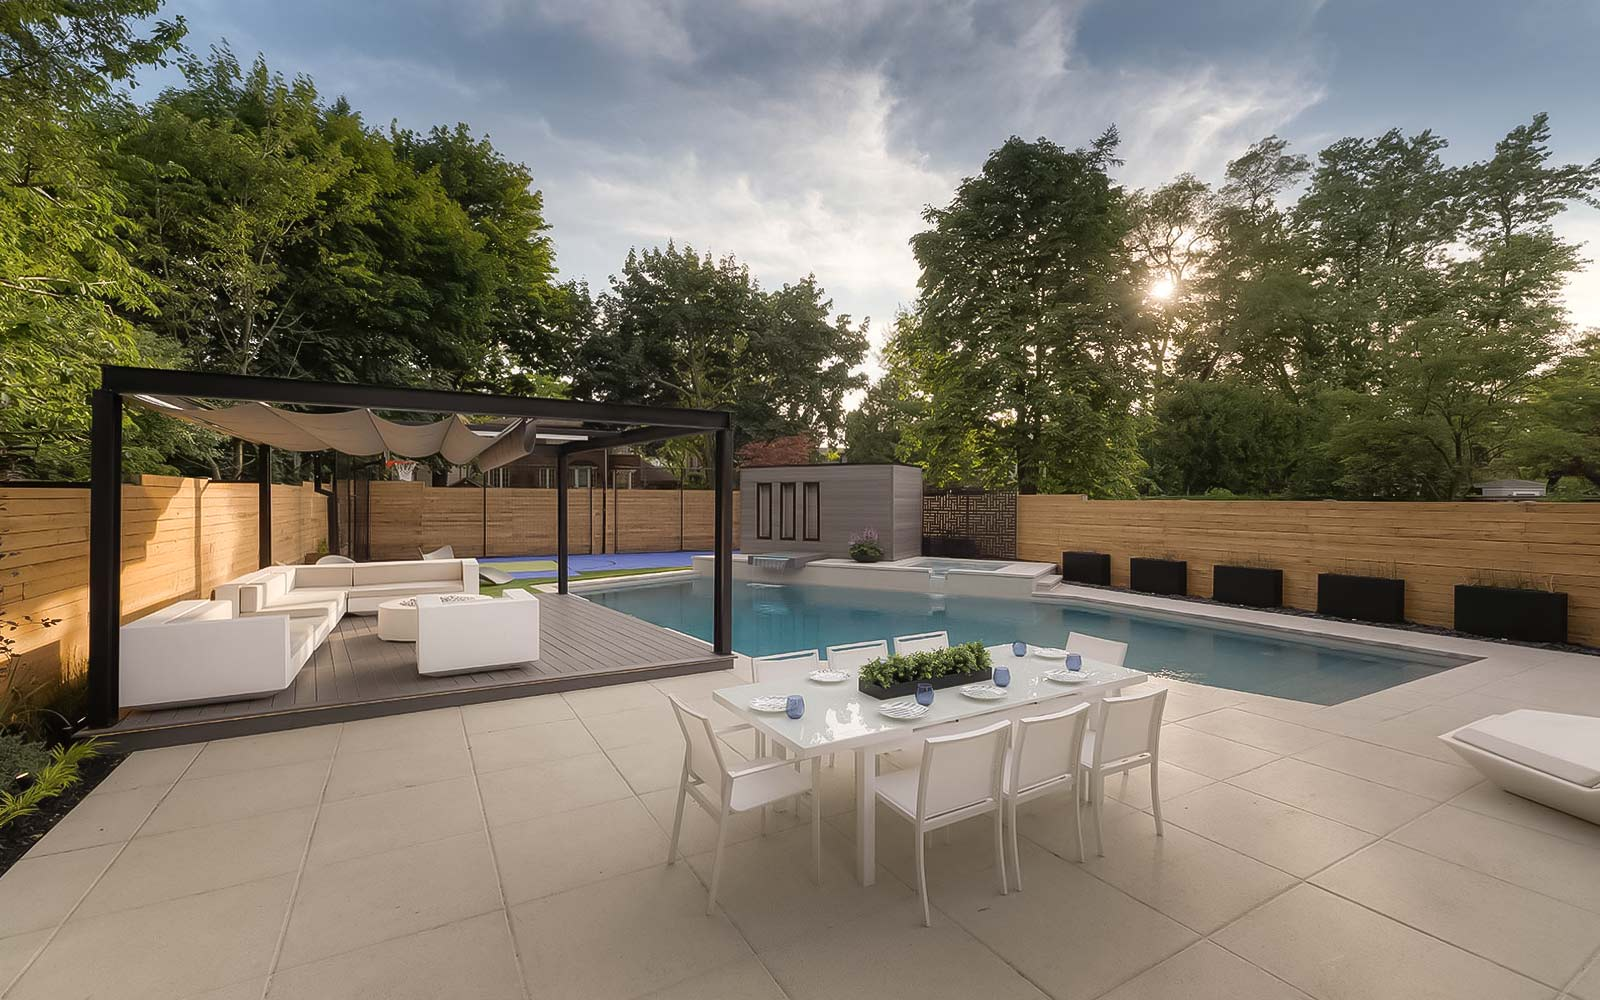 Toronto Landscaping Project Featuring Pool With Water Features, Outdoor Fireplace, Sports Court, Decking & Fencing.